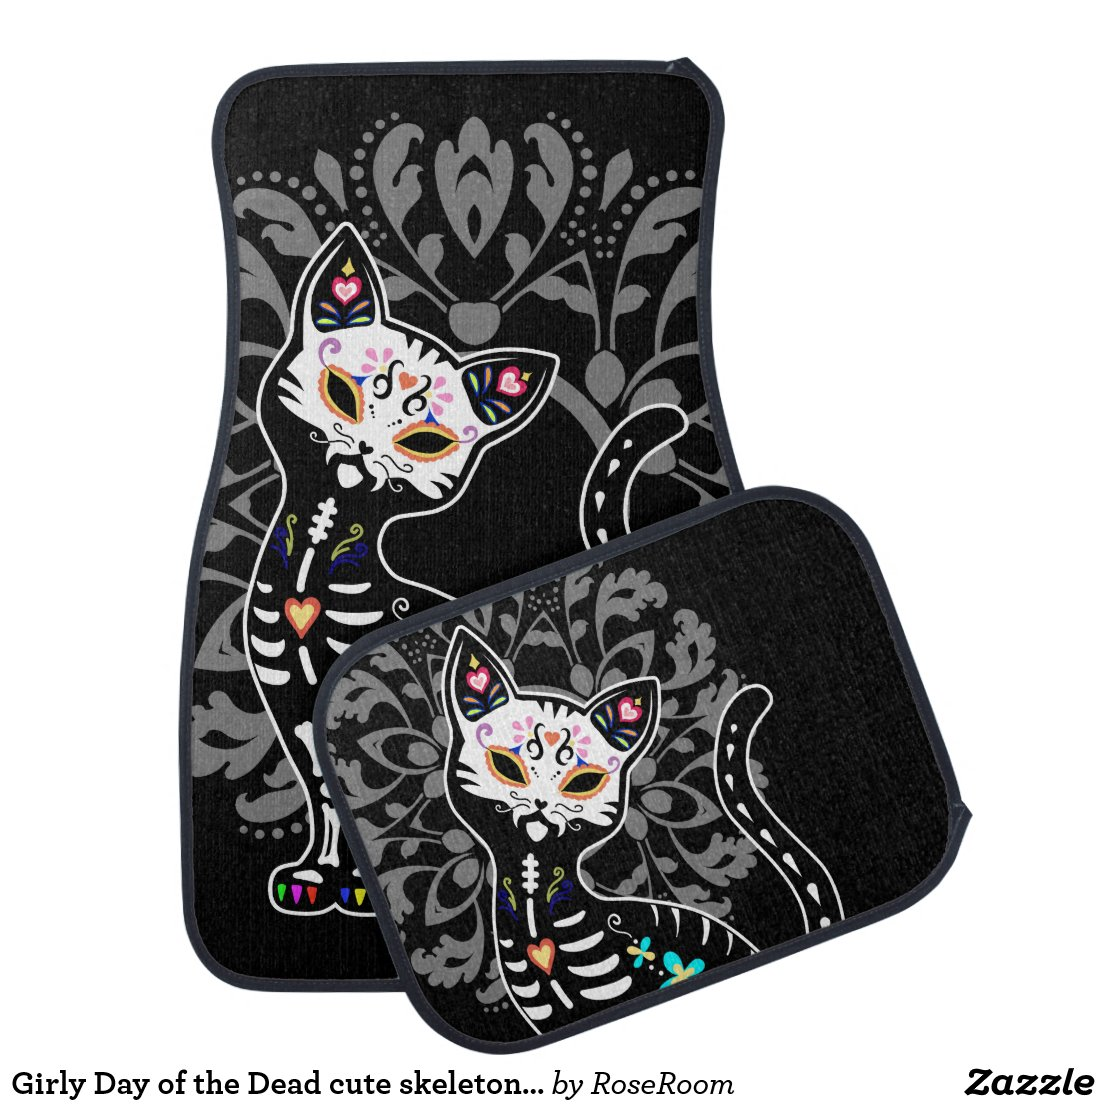 Girly Day of the Dead cute skeleton cat custom Car Floor Mat